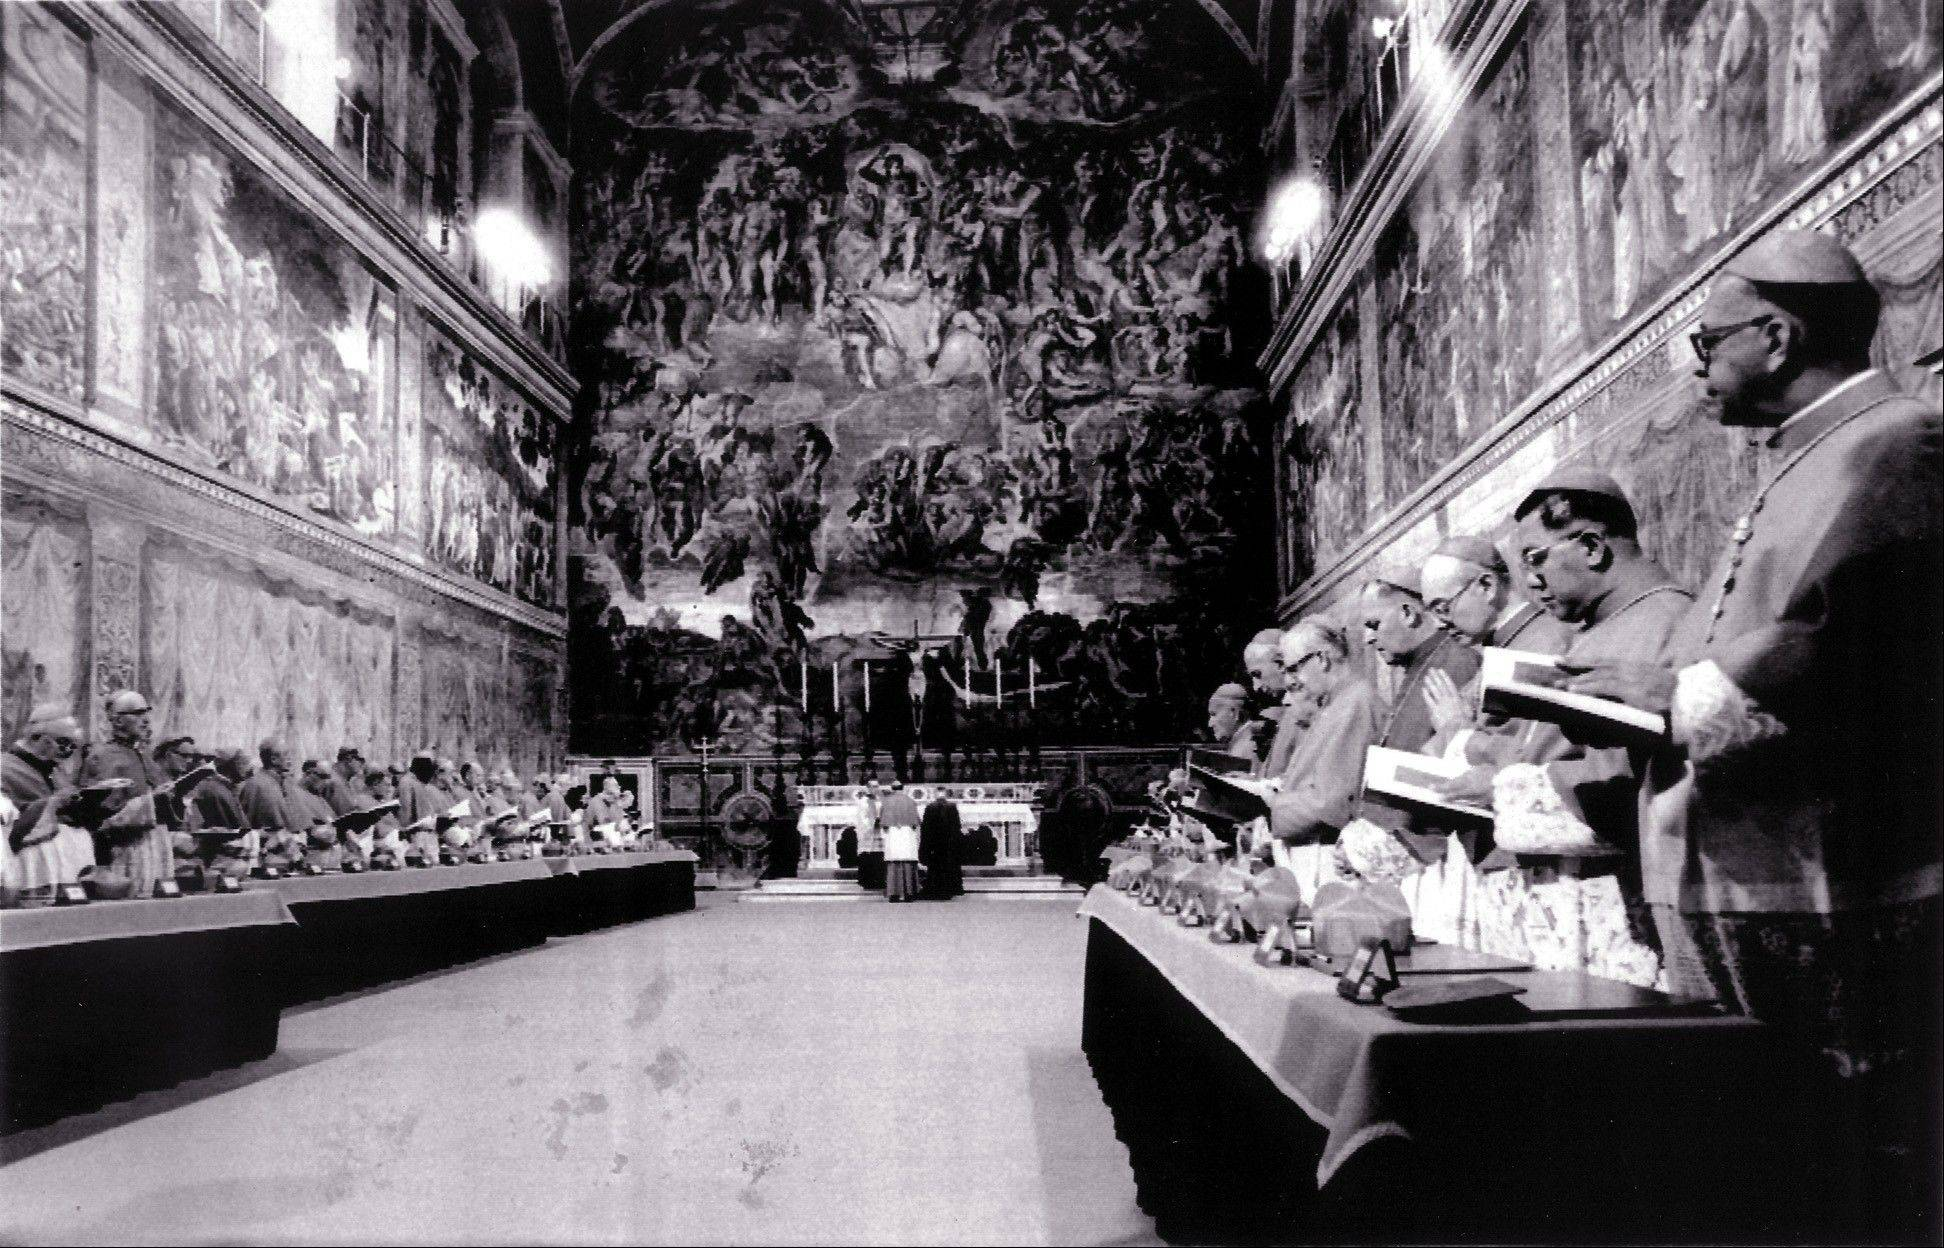 In this Oct. 14, 1978 file photo, cardinals stand in prayer inside the Sistine Chapel after they entered the conclave area for electing the successor of late John Paul I. The papal conclave is steeped in mystery -- and the church likes it that way.